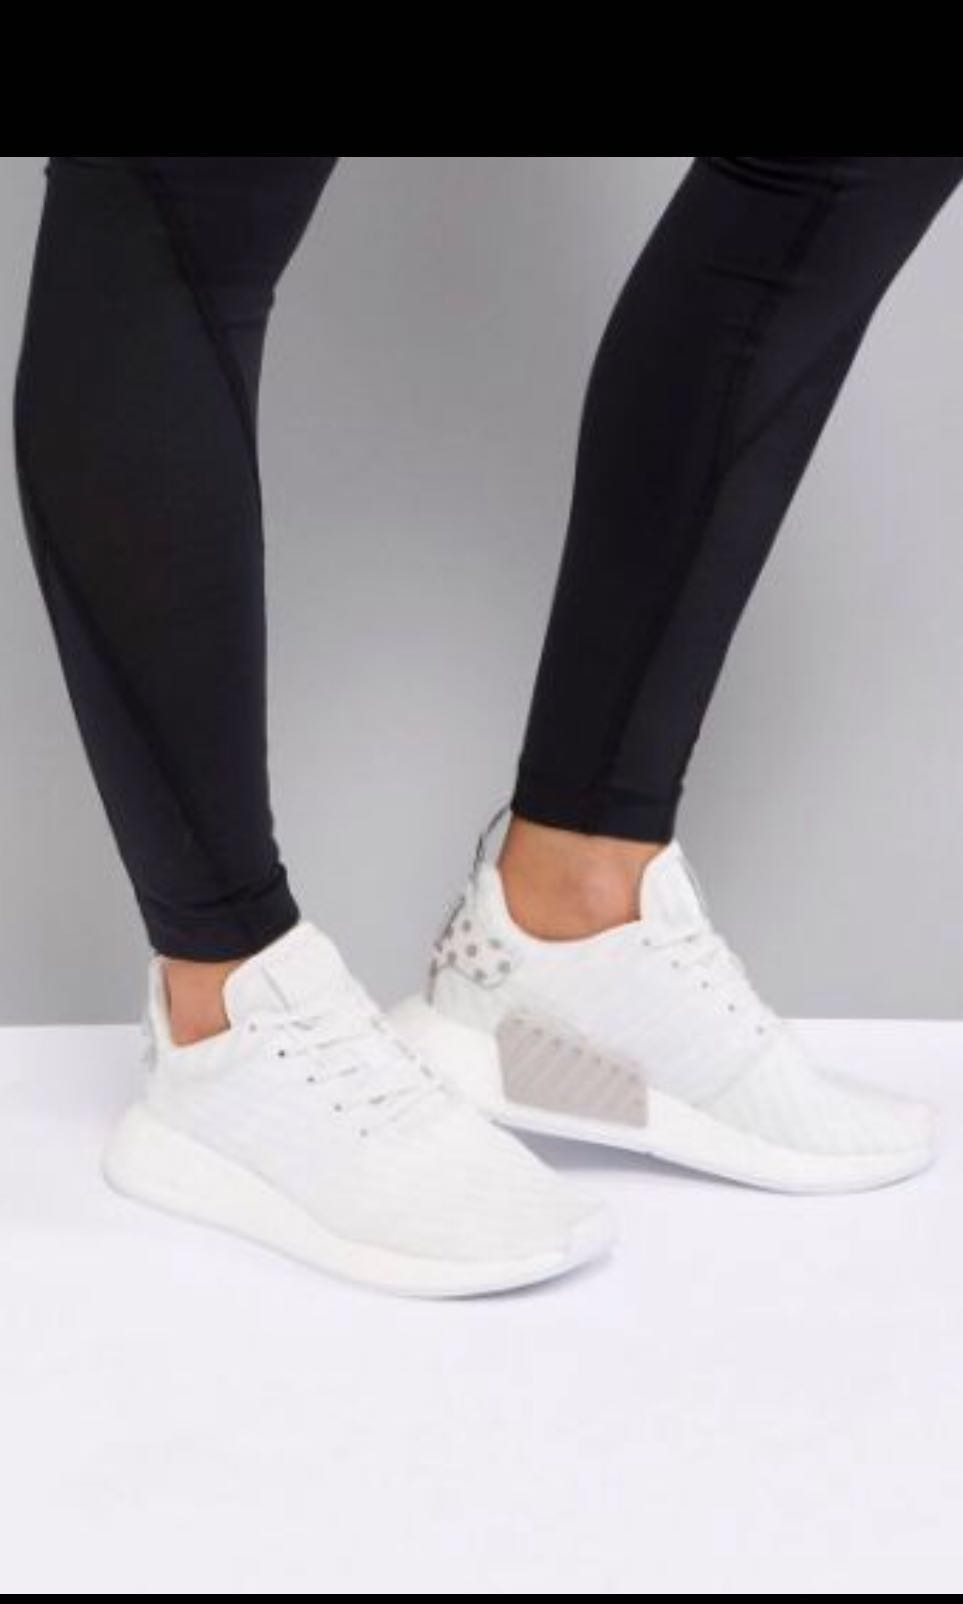 0ecad1b46 Home · Women s Fashion · Shoes · Sneakers. photo photo photo photo